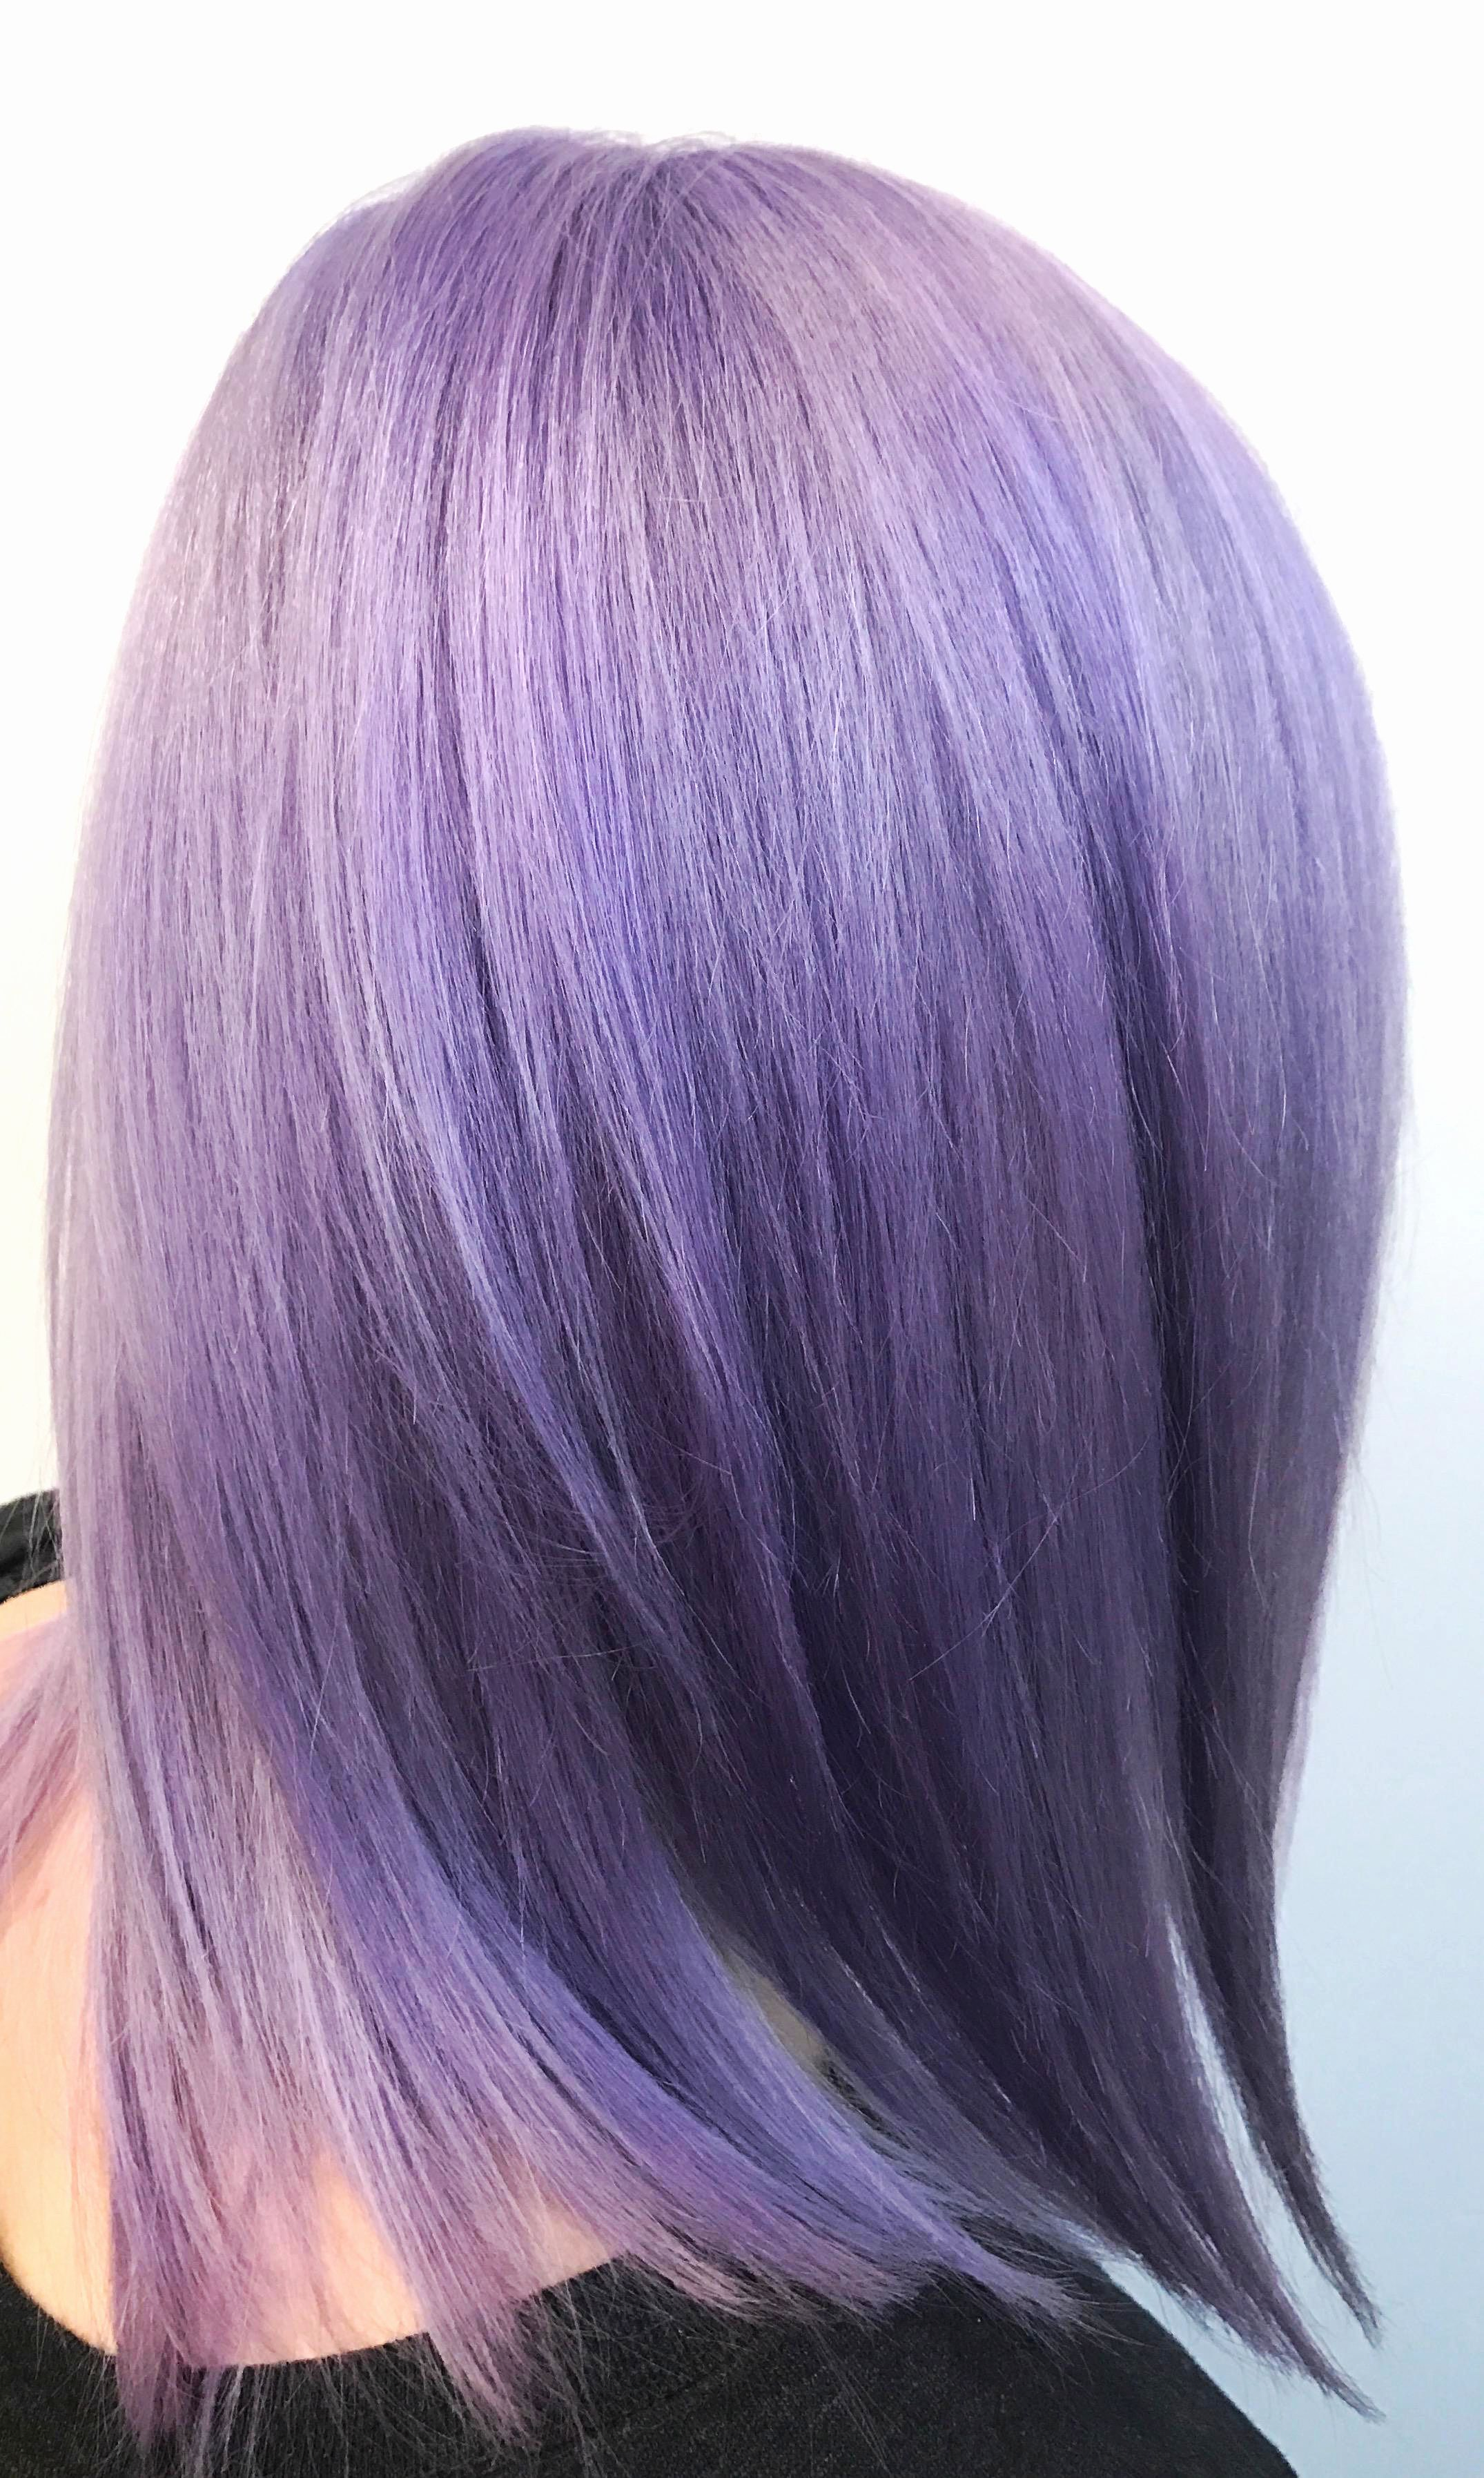 Double Process And Haircut 255 To Get These Vibrant Colors You